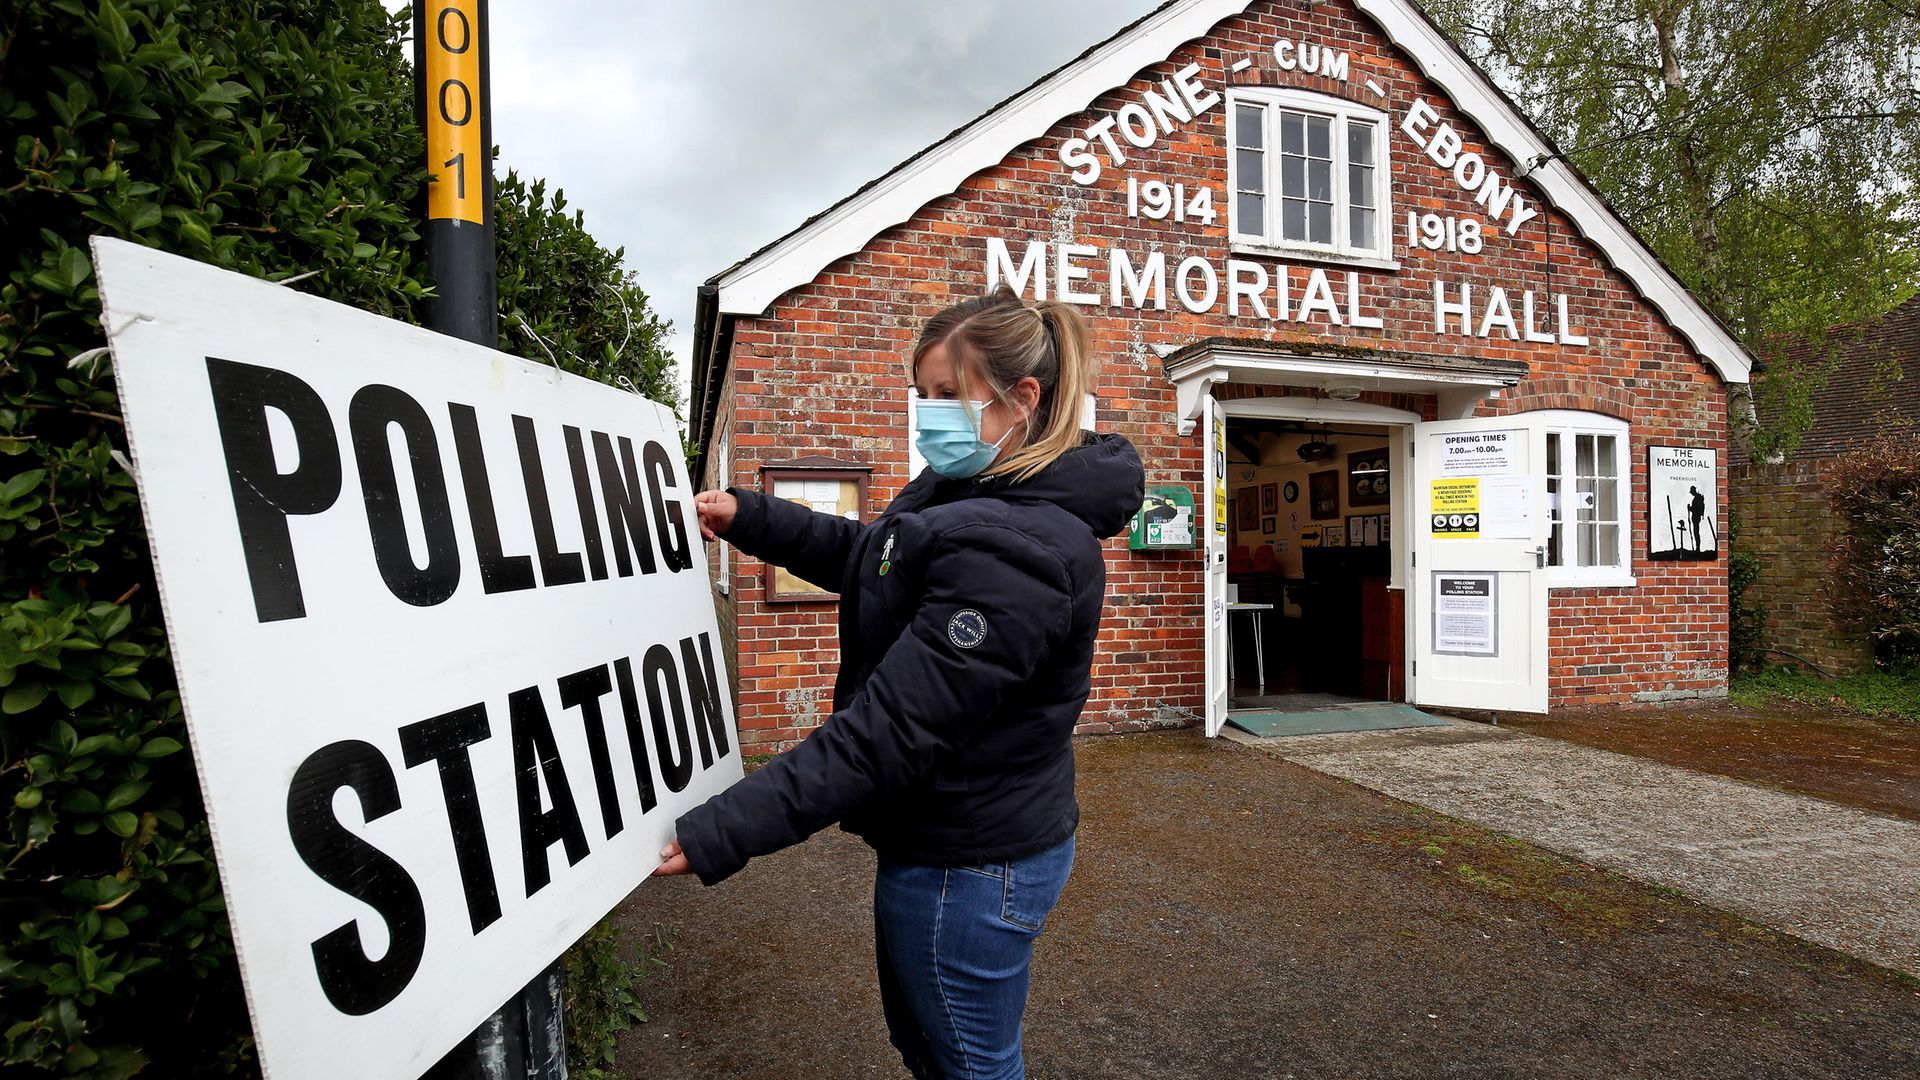 A poll clerk adjusts the sign outside a polling station - Credit: PA